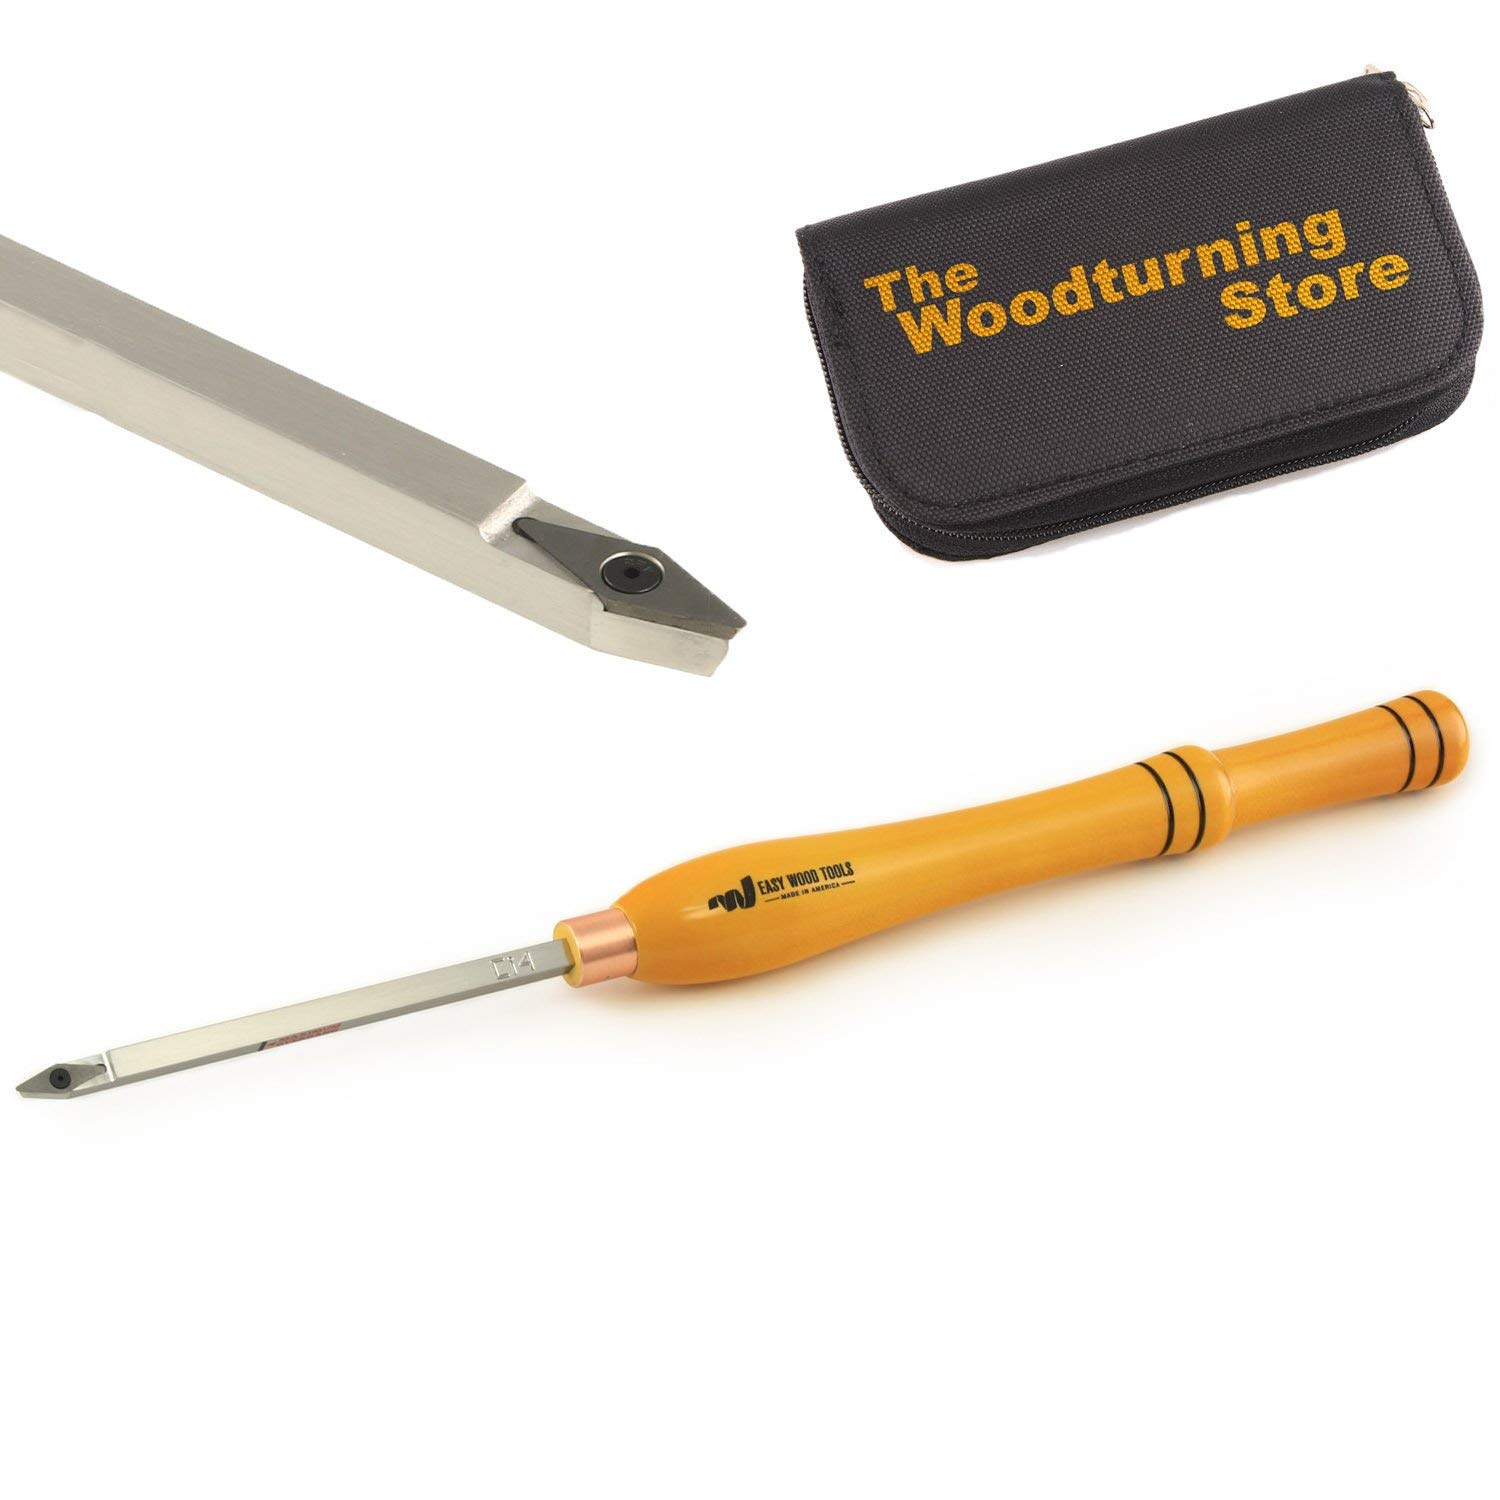 Easy Wood Tools, 7300, Mid-Size Easy Detailer with BONUS Woodturning Store Carbide Cutter Holder